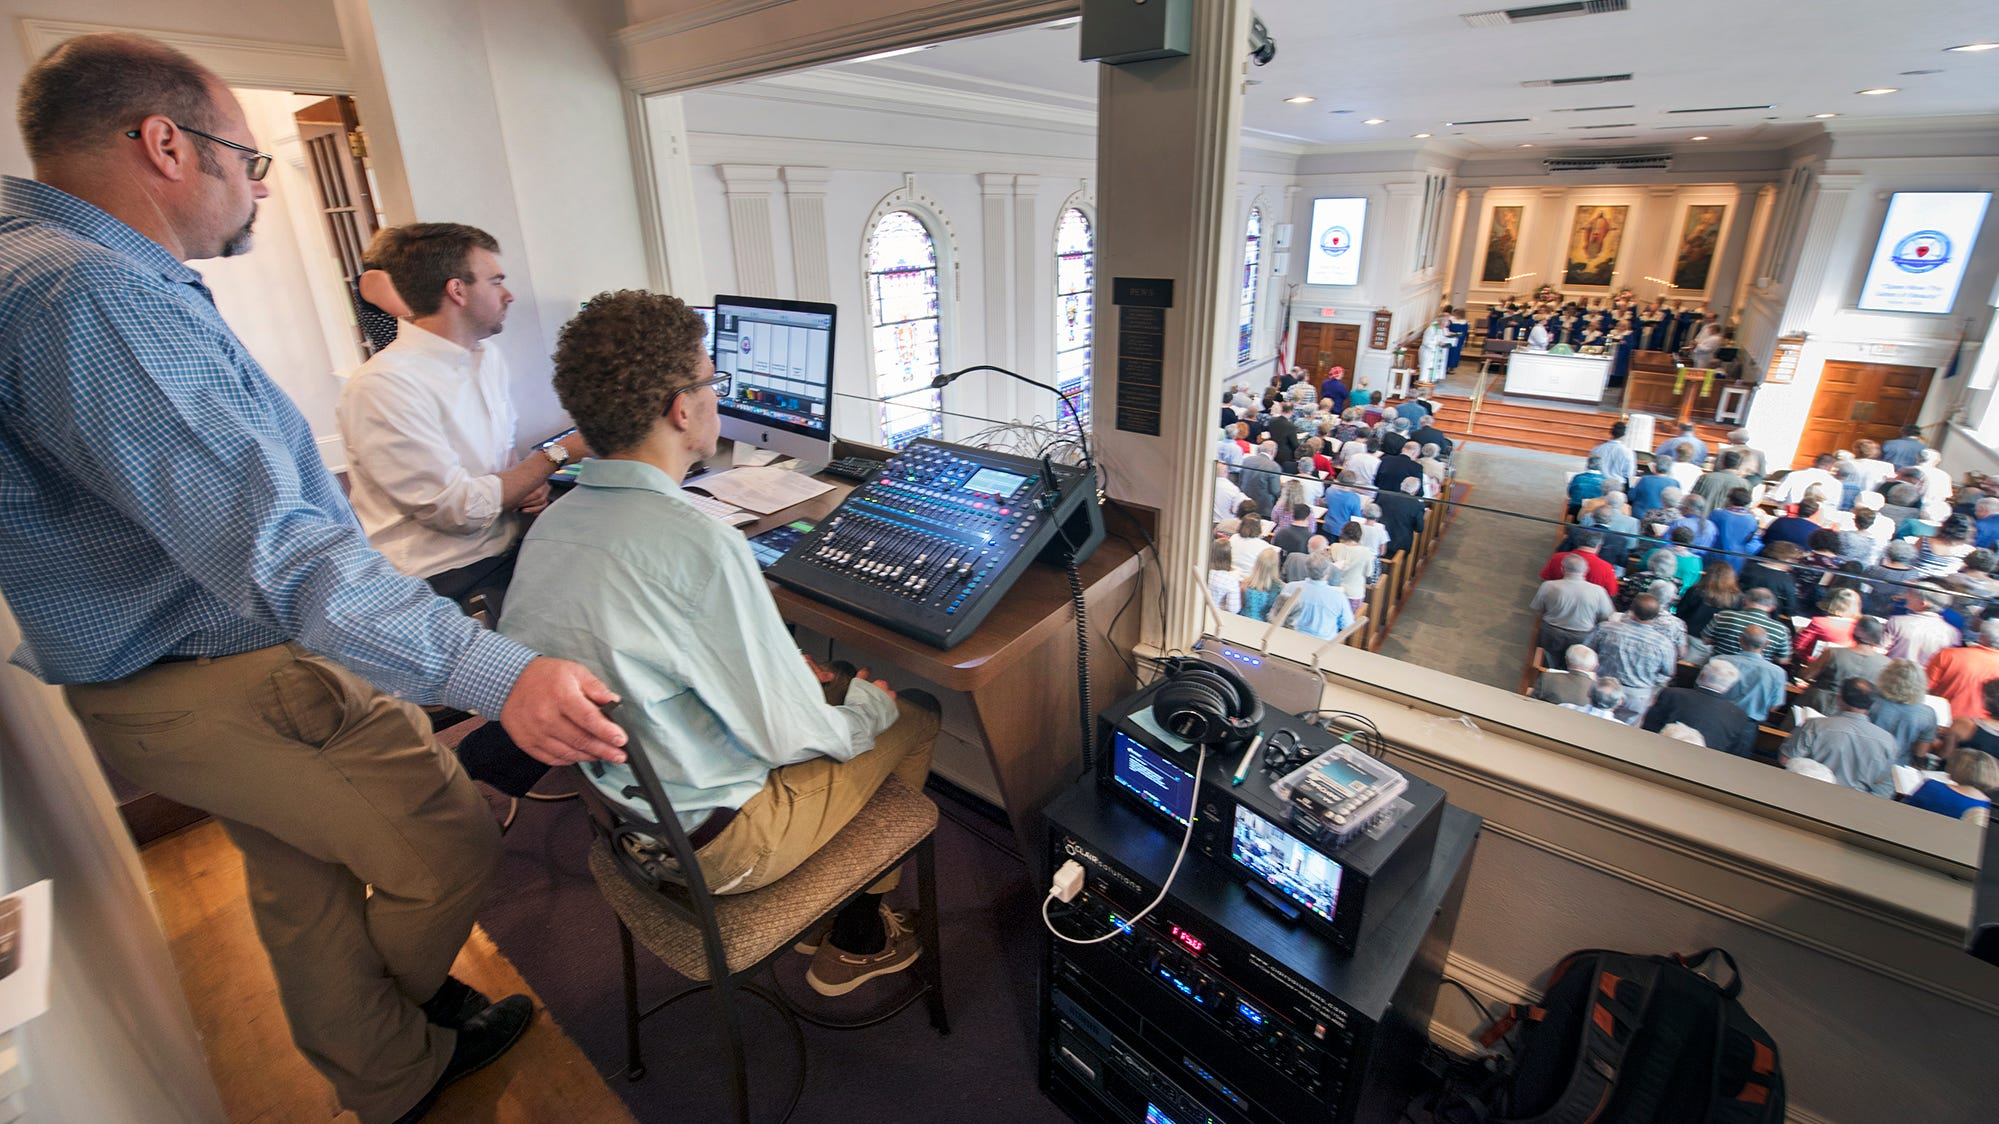 Tradition, tech blend at Advent Lutheran in Springettsbury Twp. with $3 million renovation